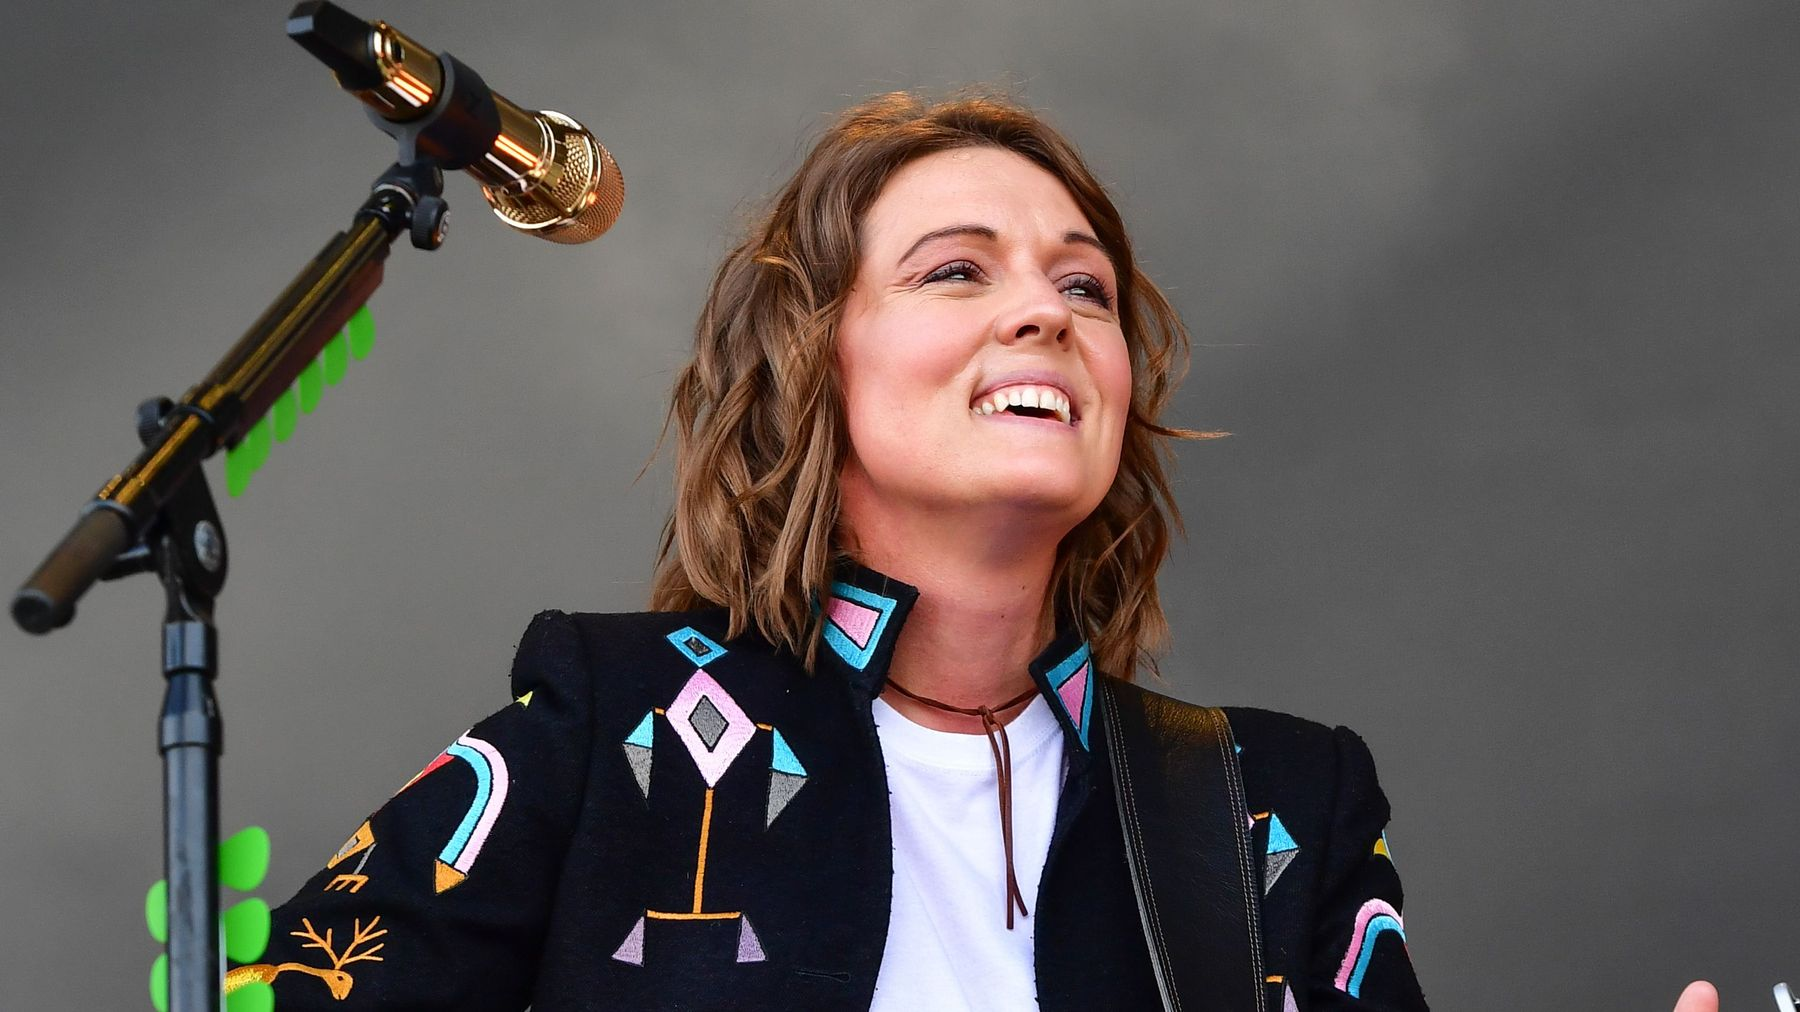 Brandi Carlile's Concert at the Ryman to Benefit Rissi Palmer's Color Me Country Fund and More